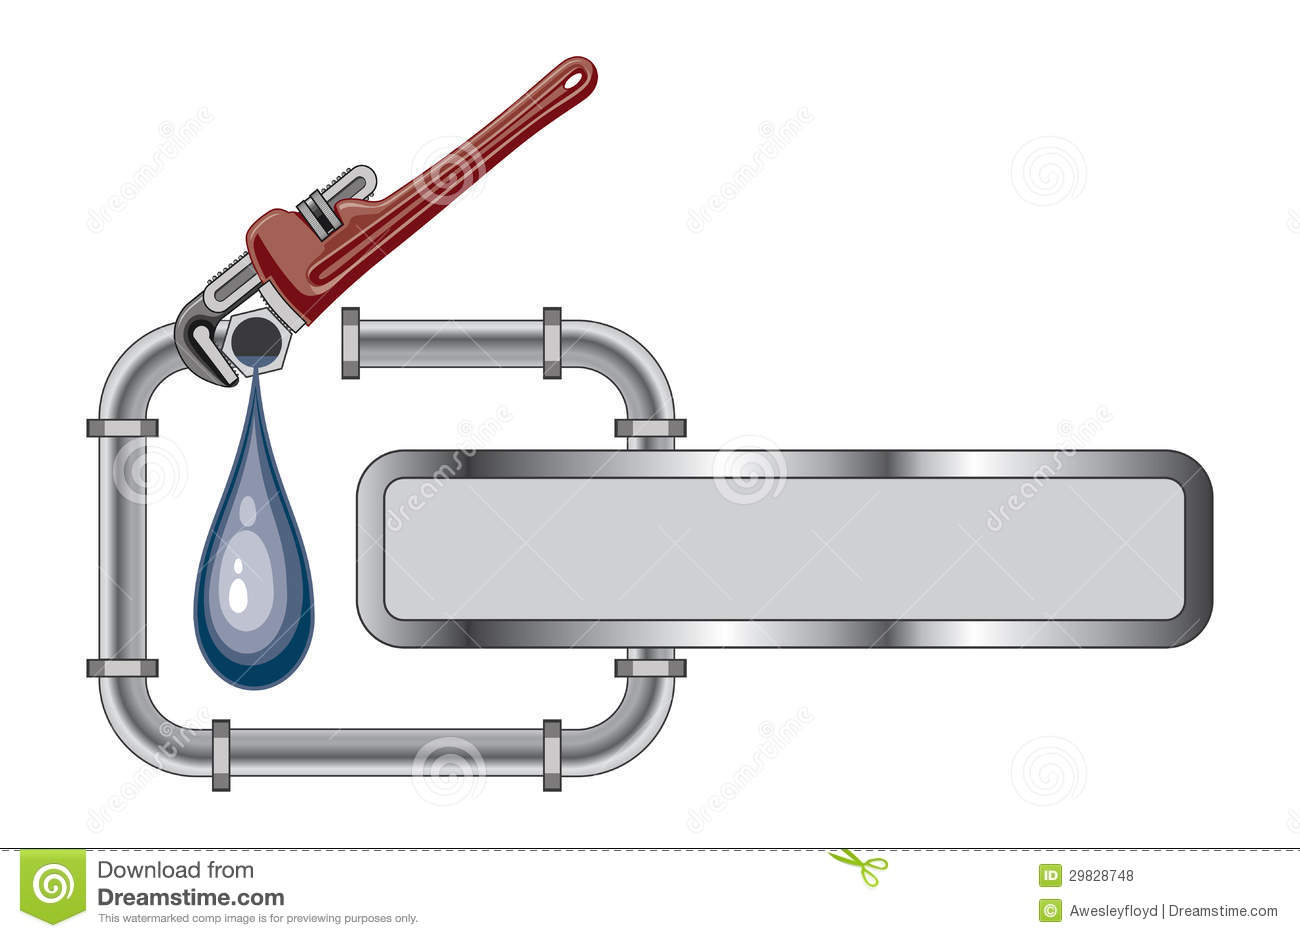 Illustration Of A Plumbing Design With Pipes Adjustable Wrench And